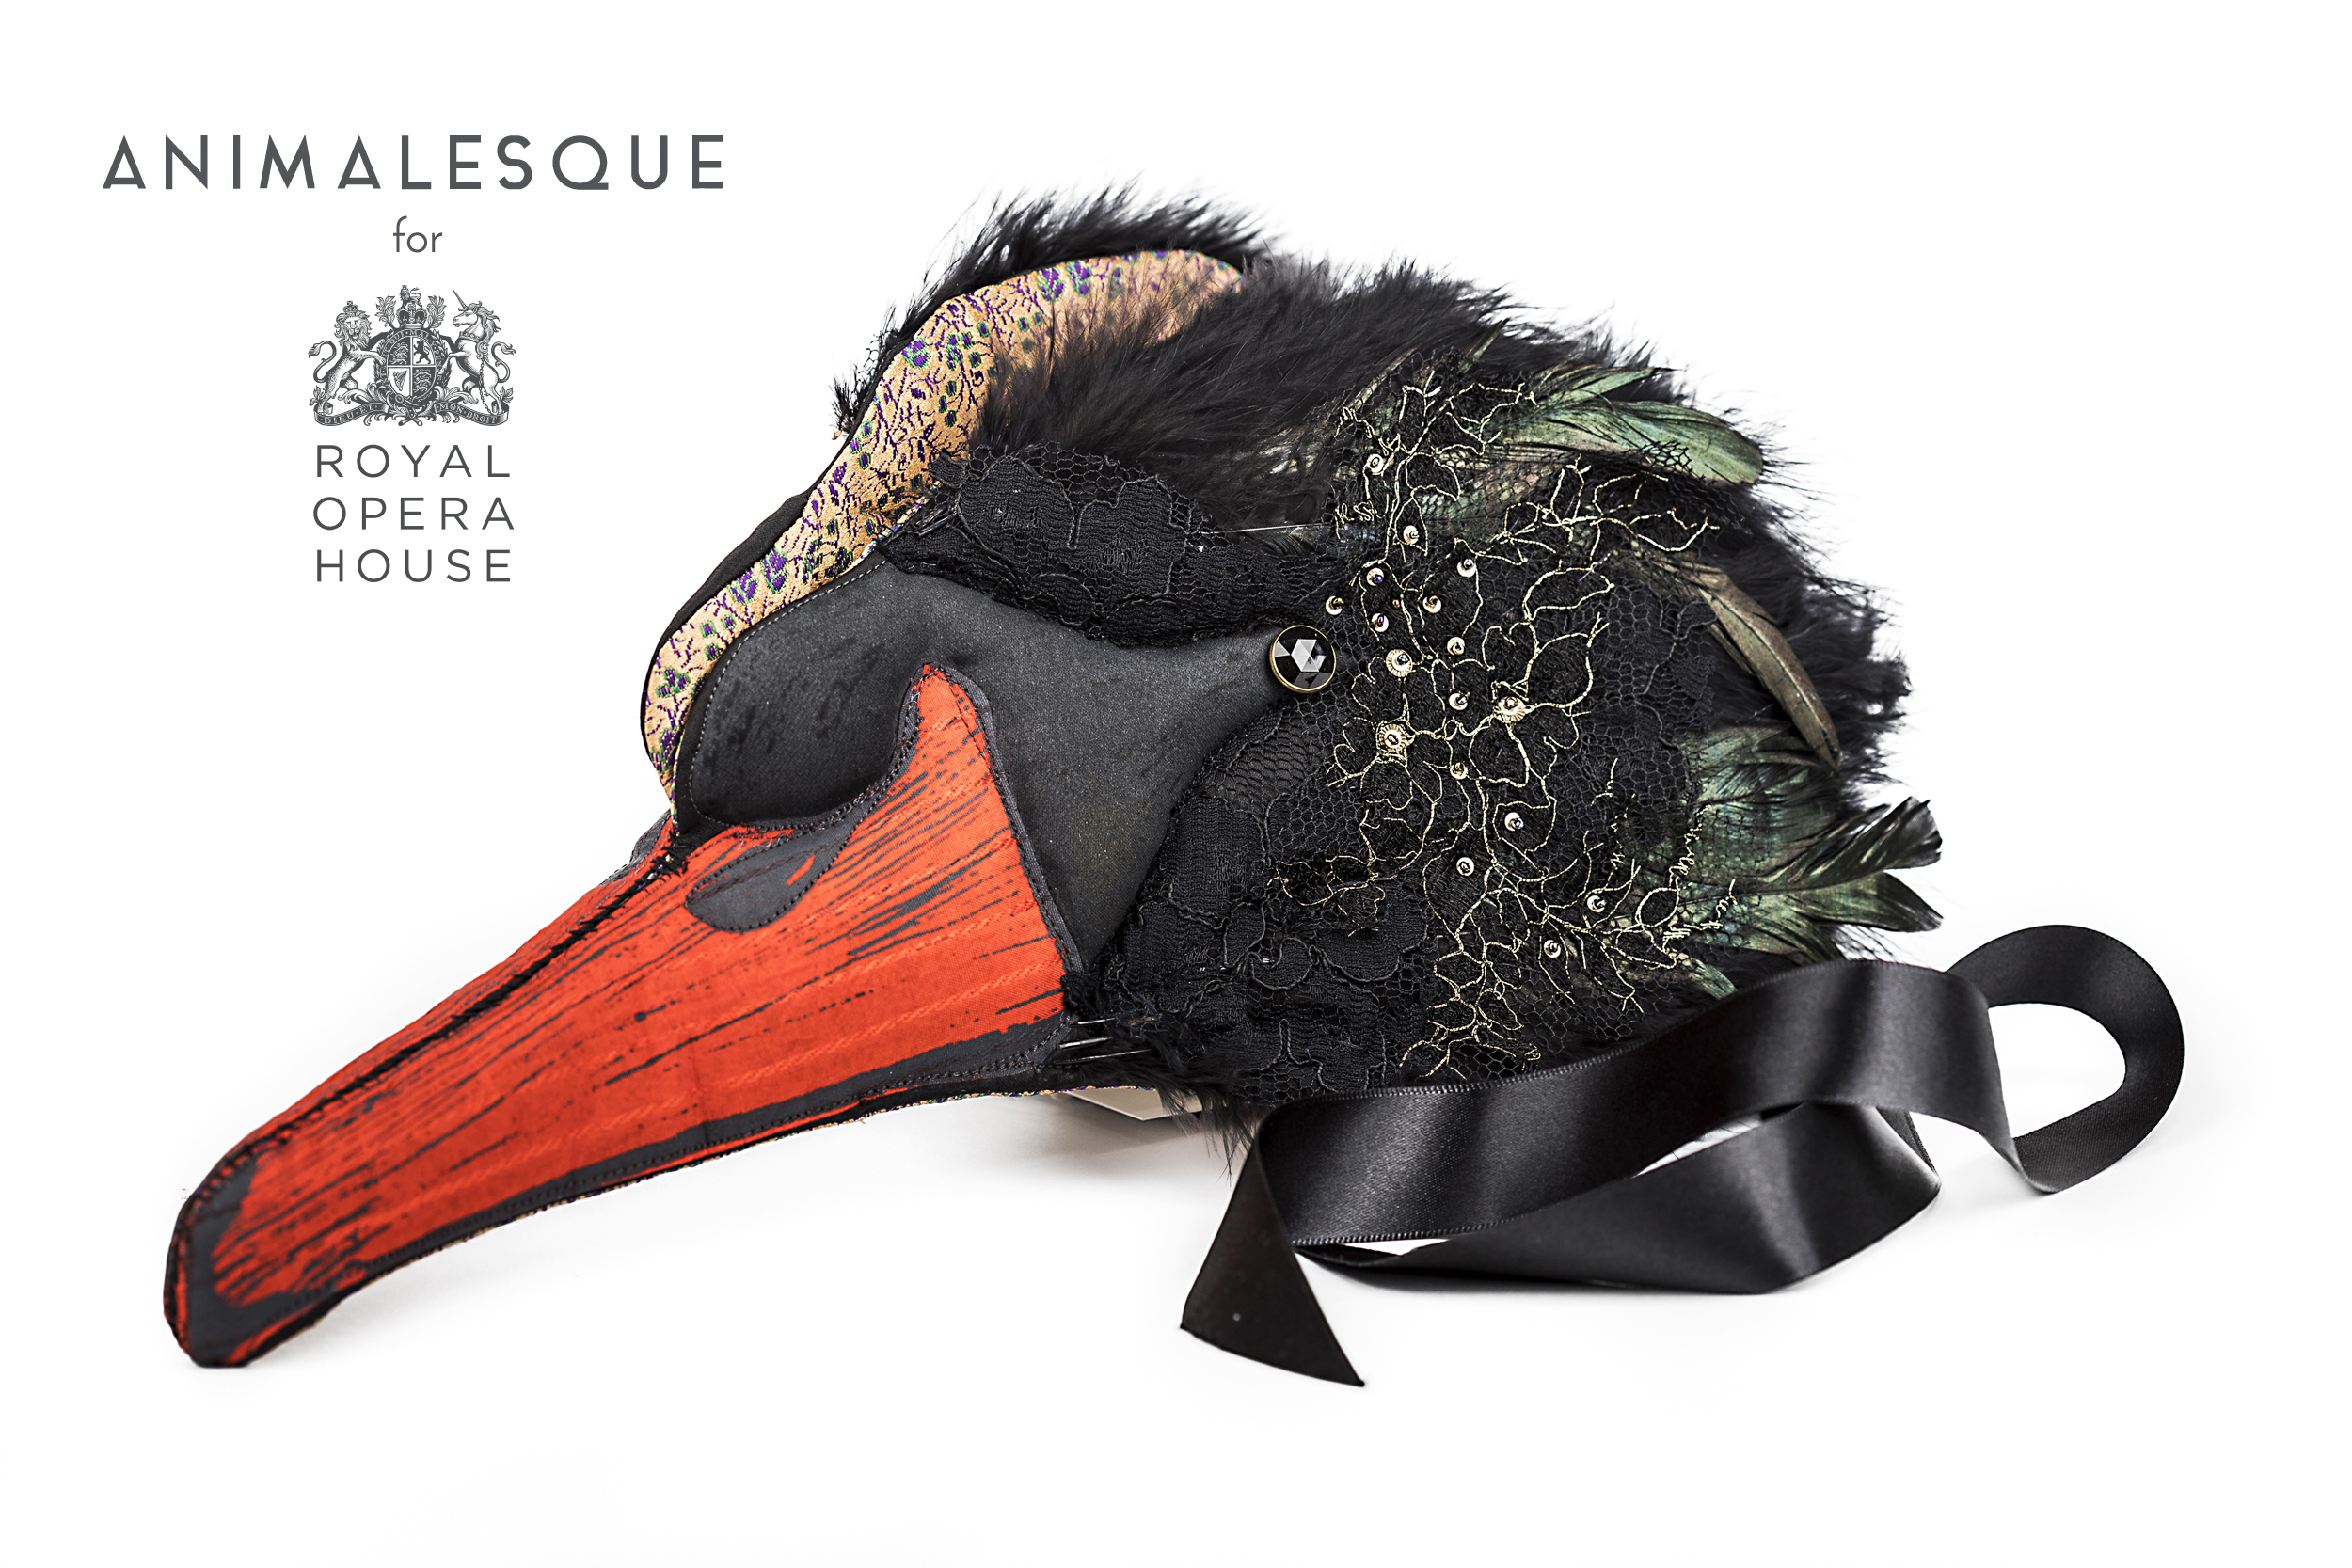 Animalesque for the Royal opera House